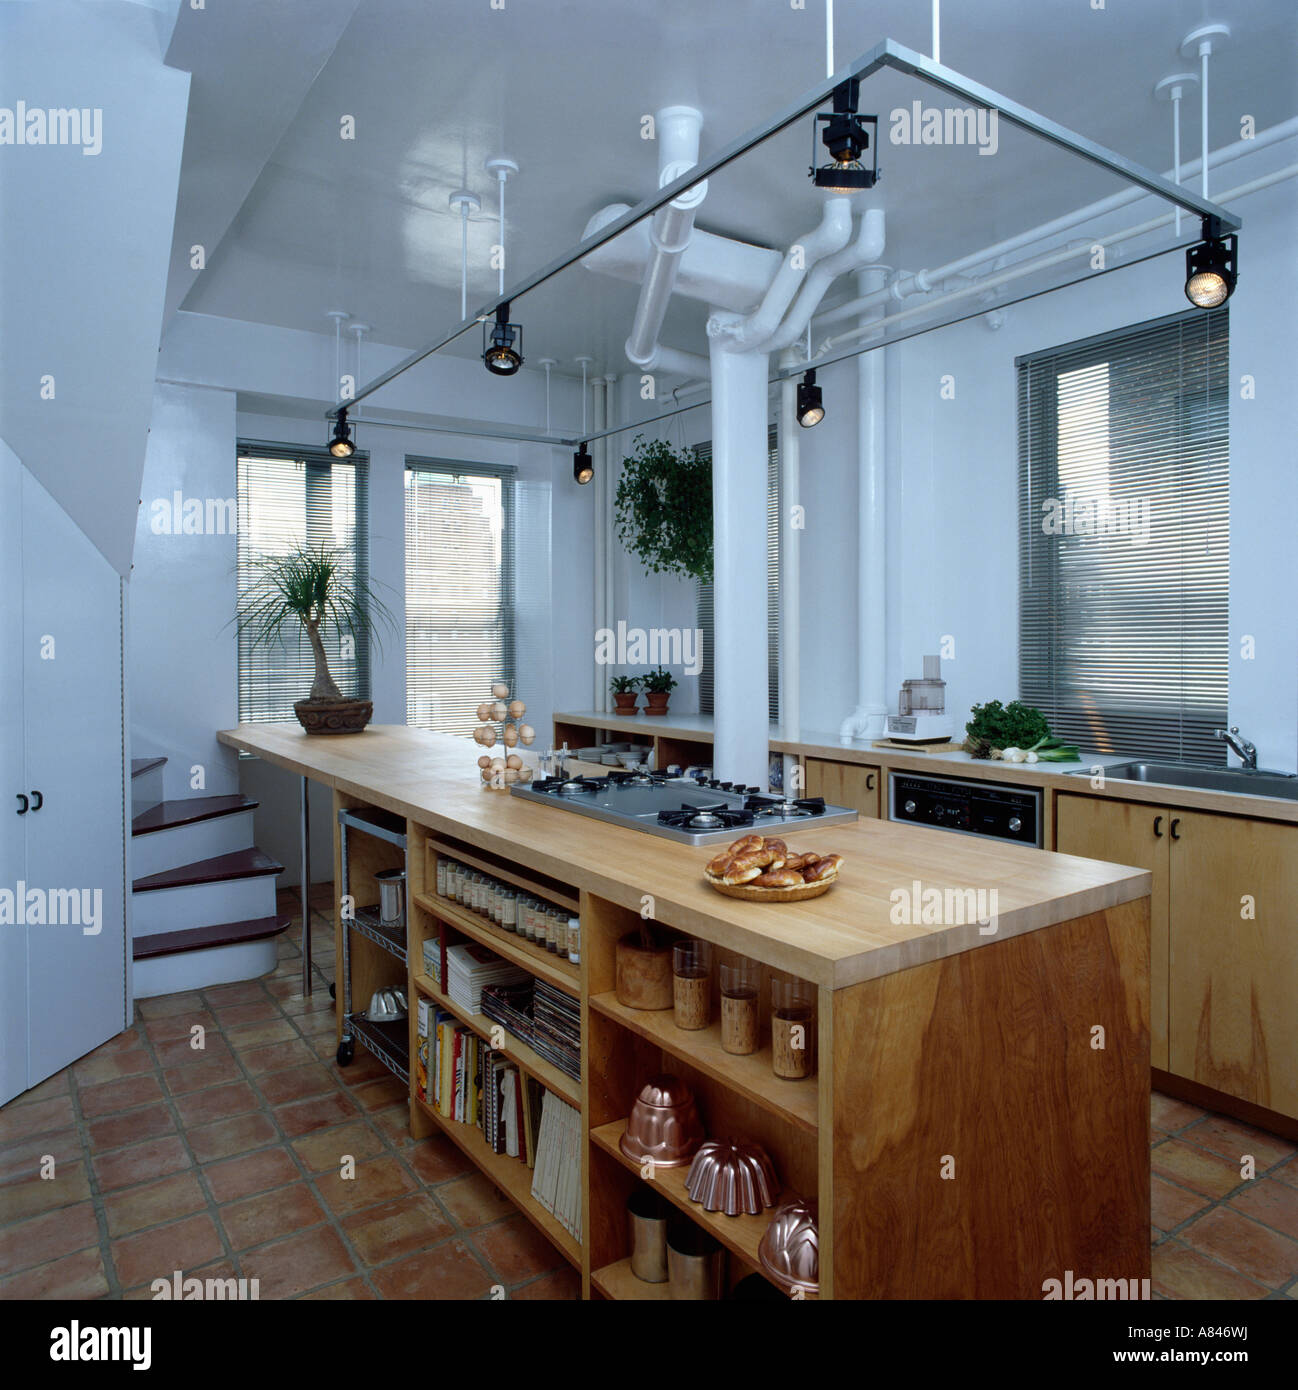 open shelving in wooden island unit below tubular lighting track in modern white loft conversion kitchen - Kitchen Lighting Track